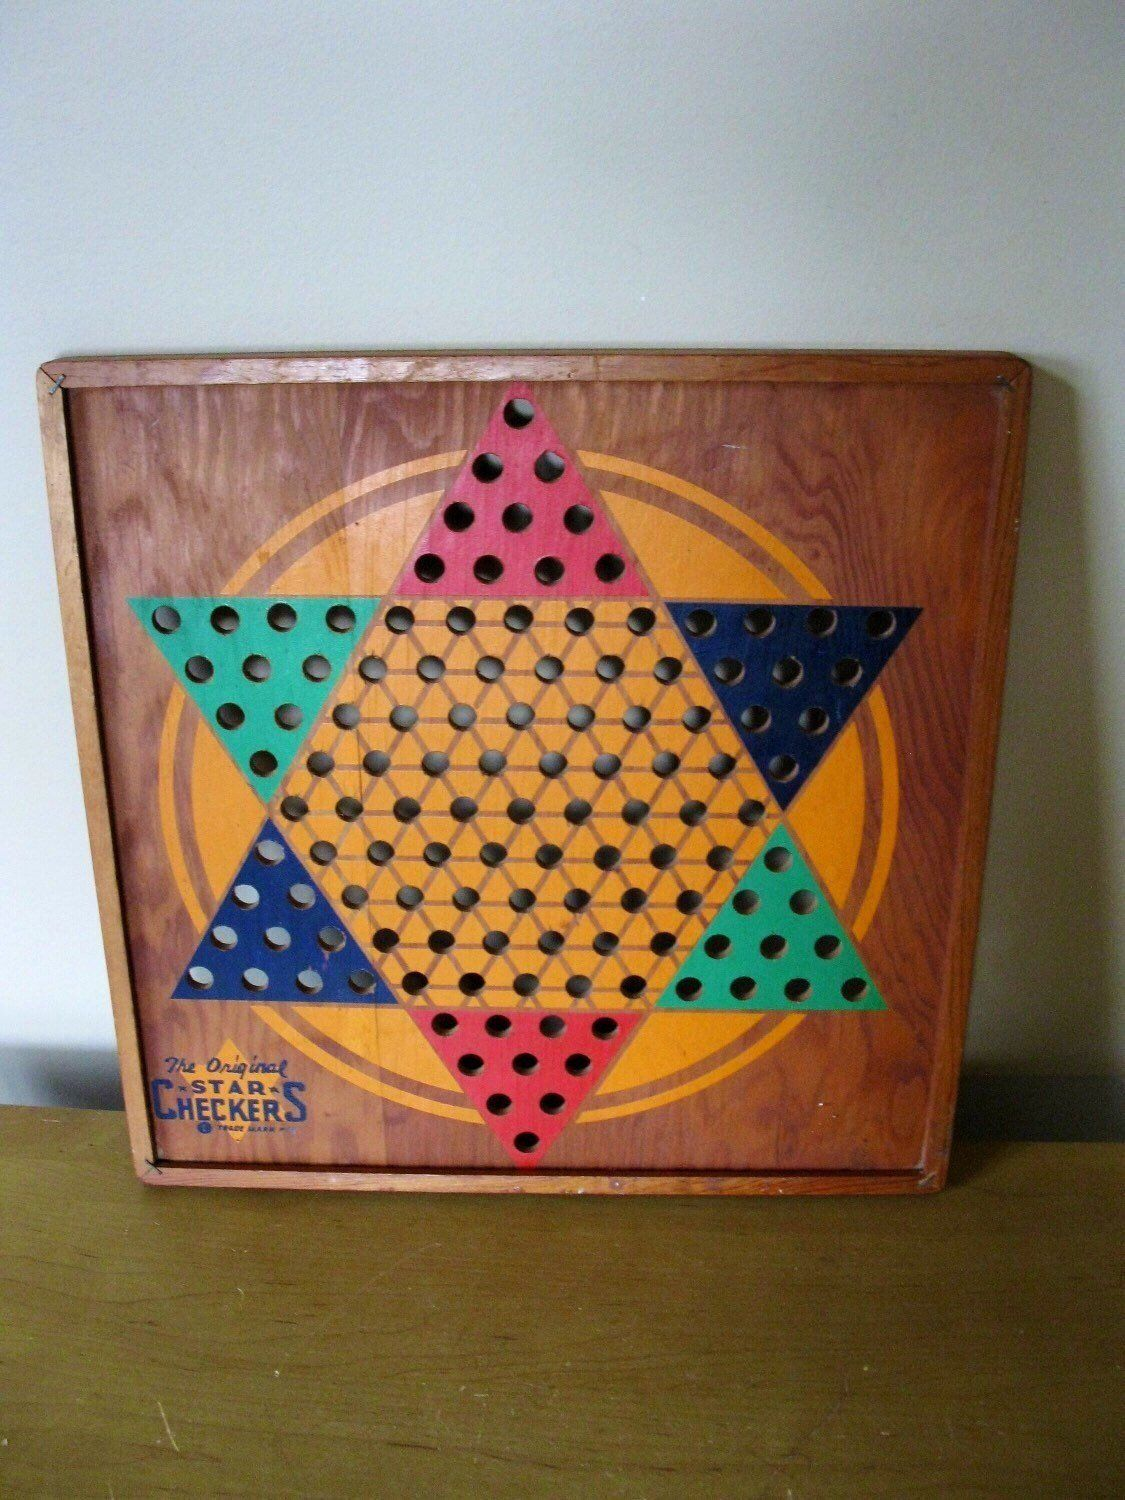 vintage chinese checkers game board 1938 star checkers l g